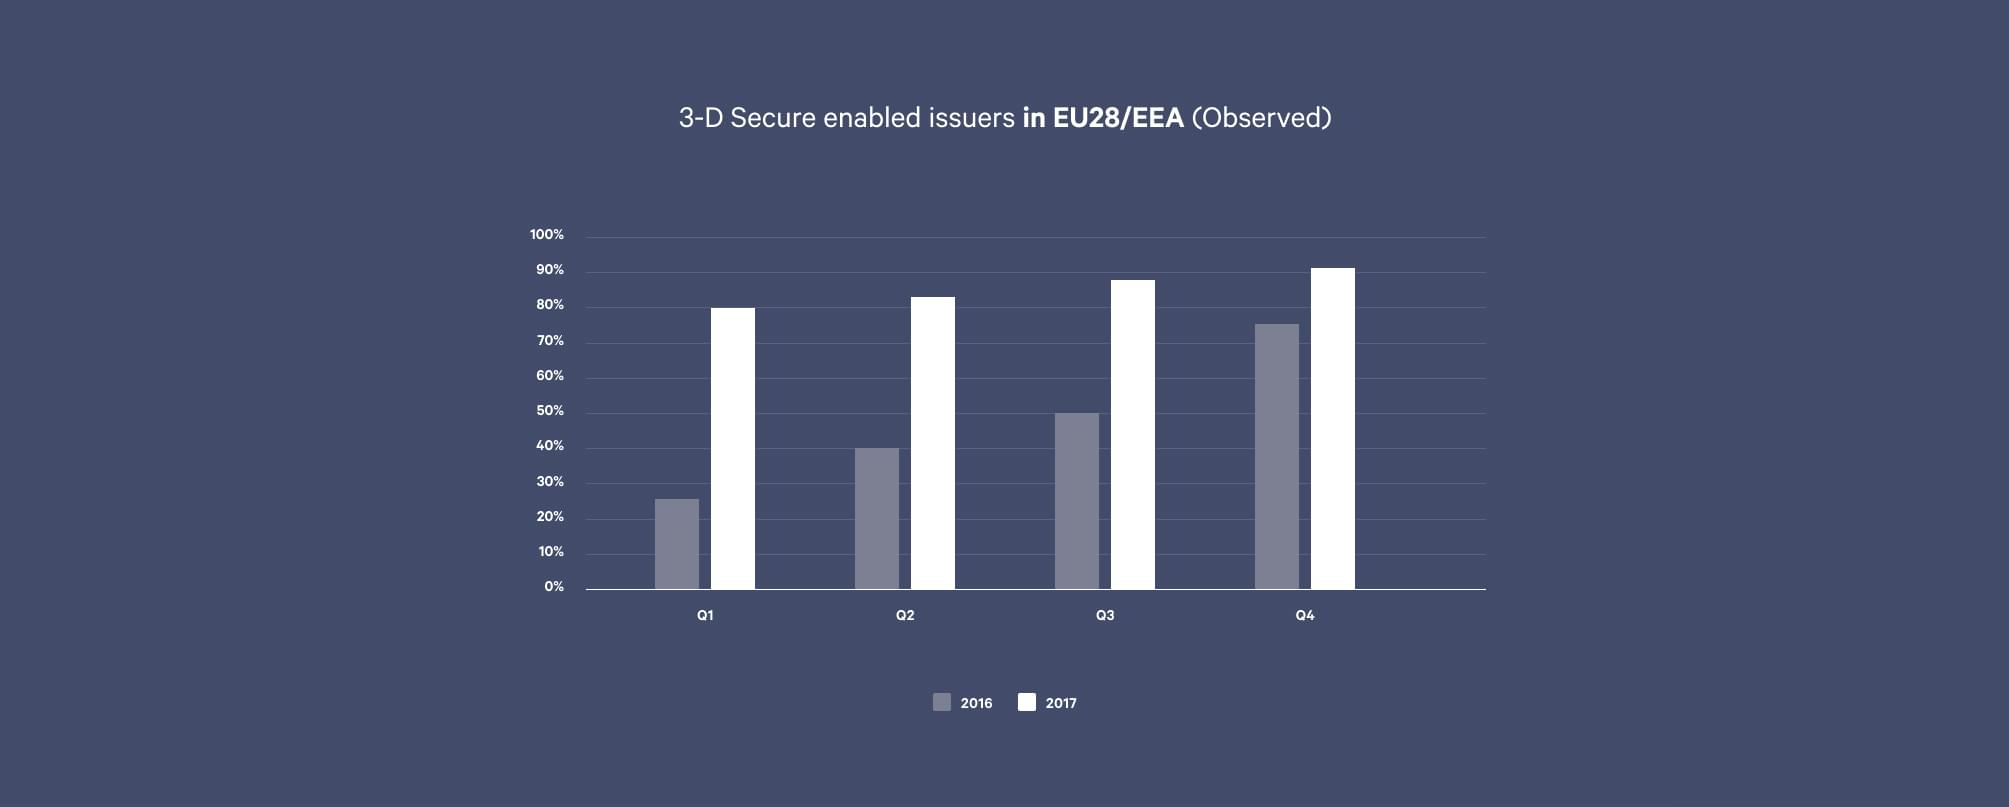 3-D Secure enabled issuers in EU28/EEA (Observed)